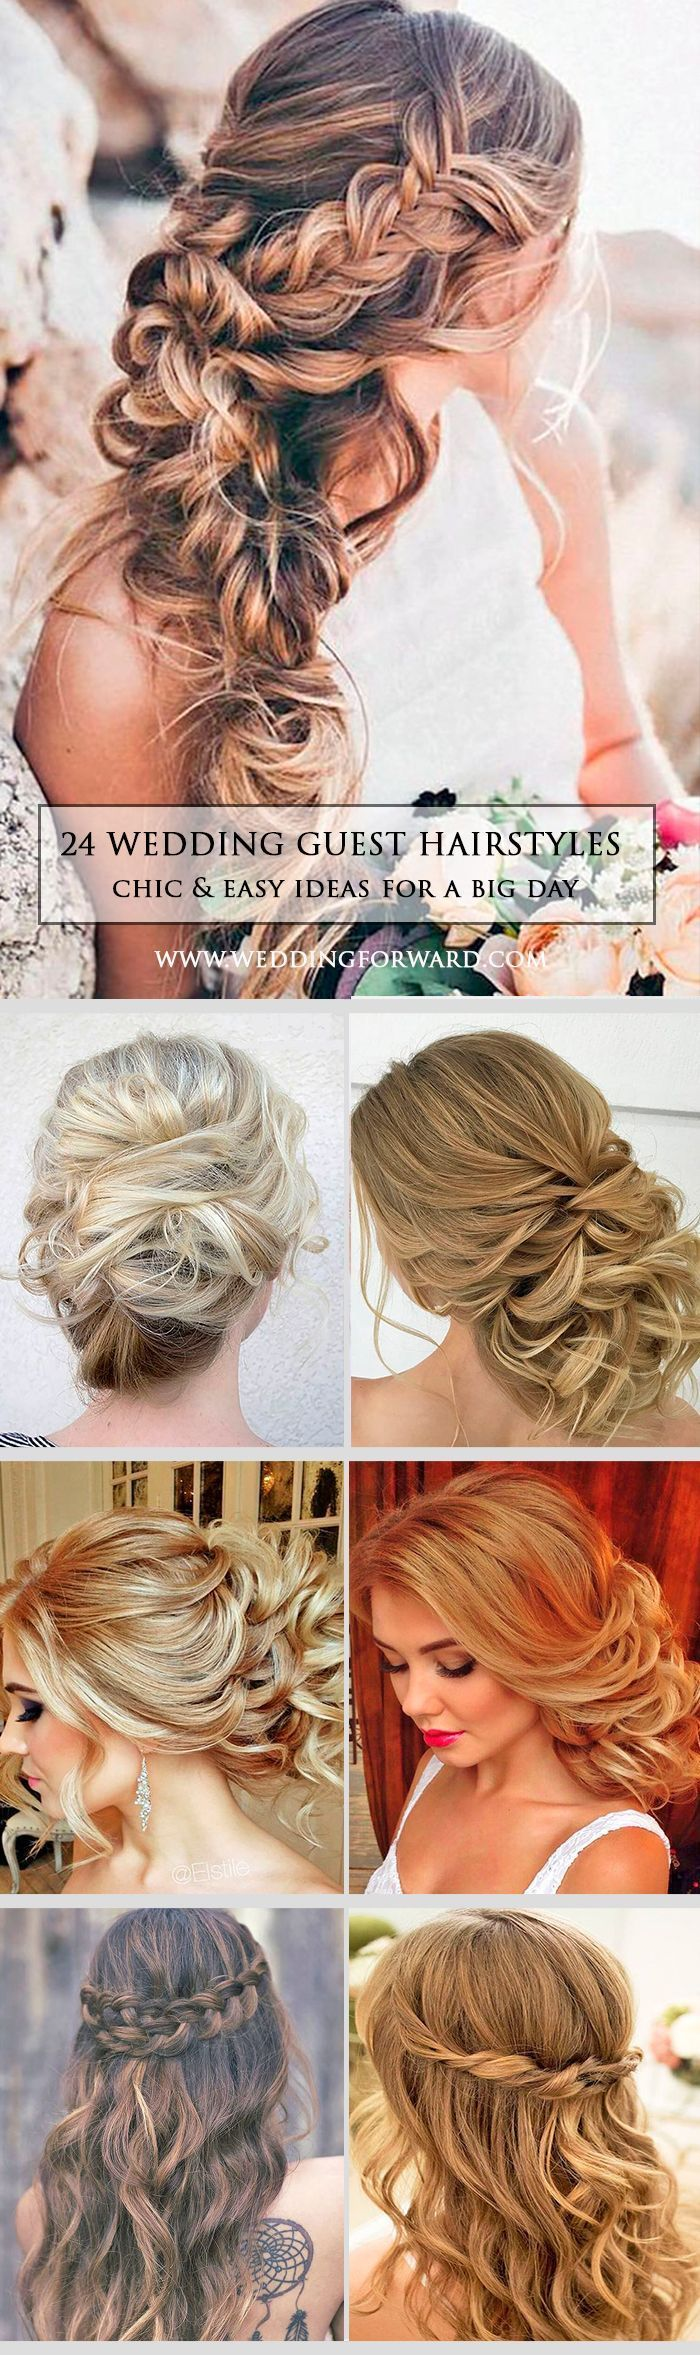 chic and easy wedding guest hairstyles wedding guest